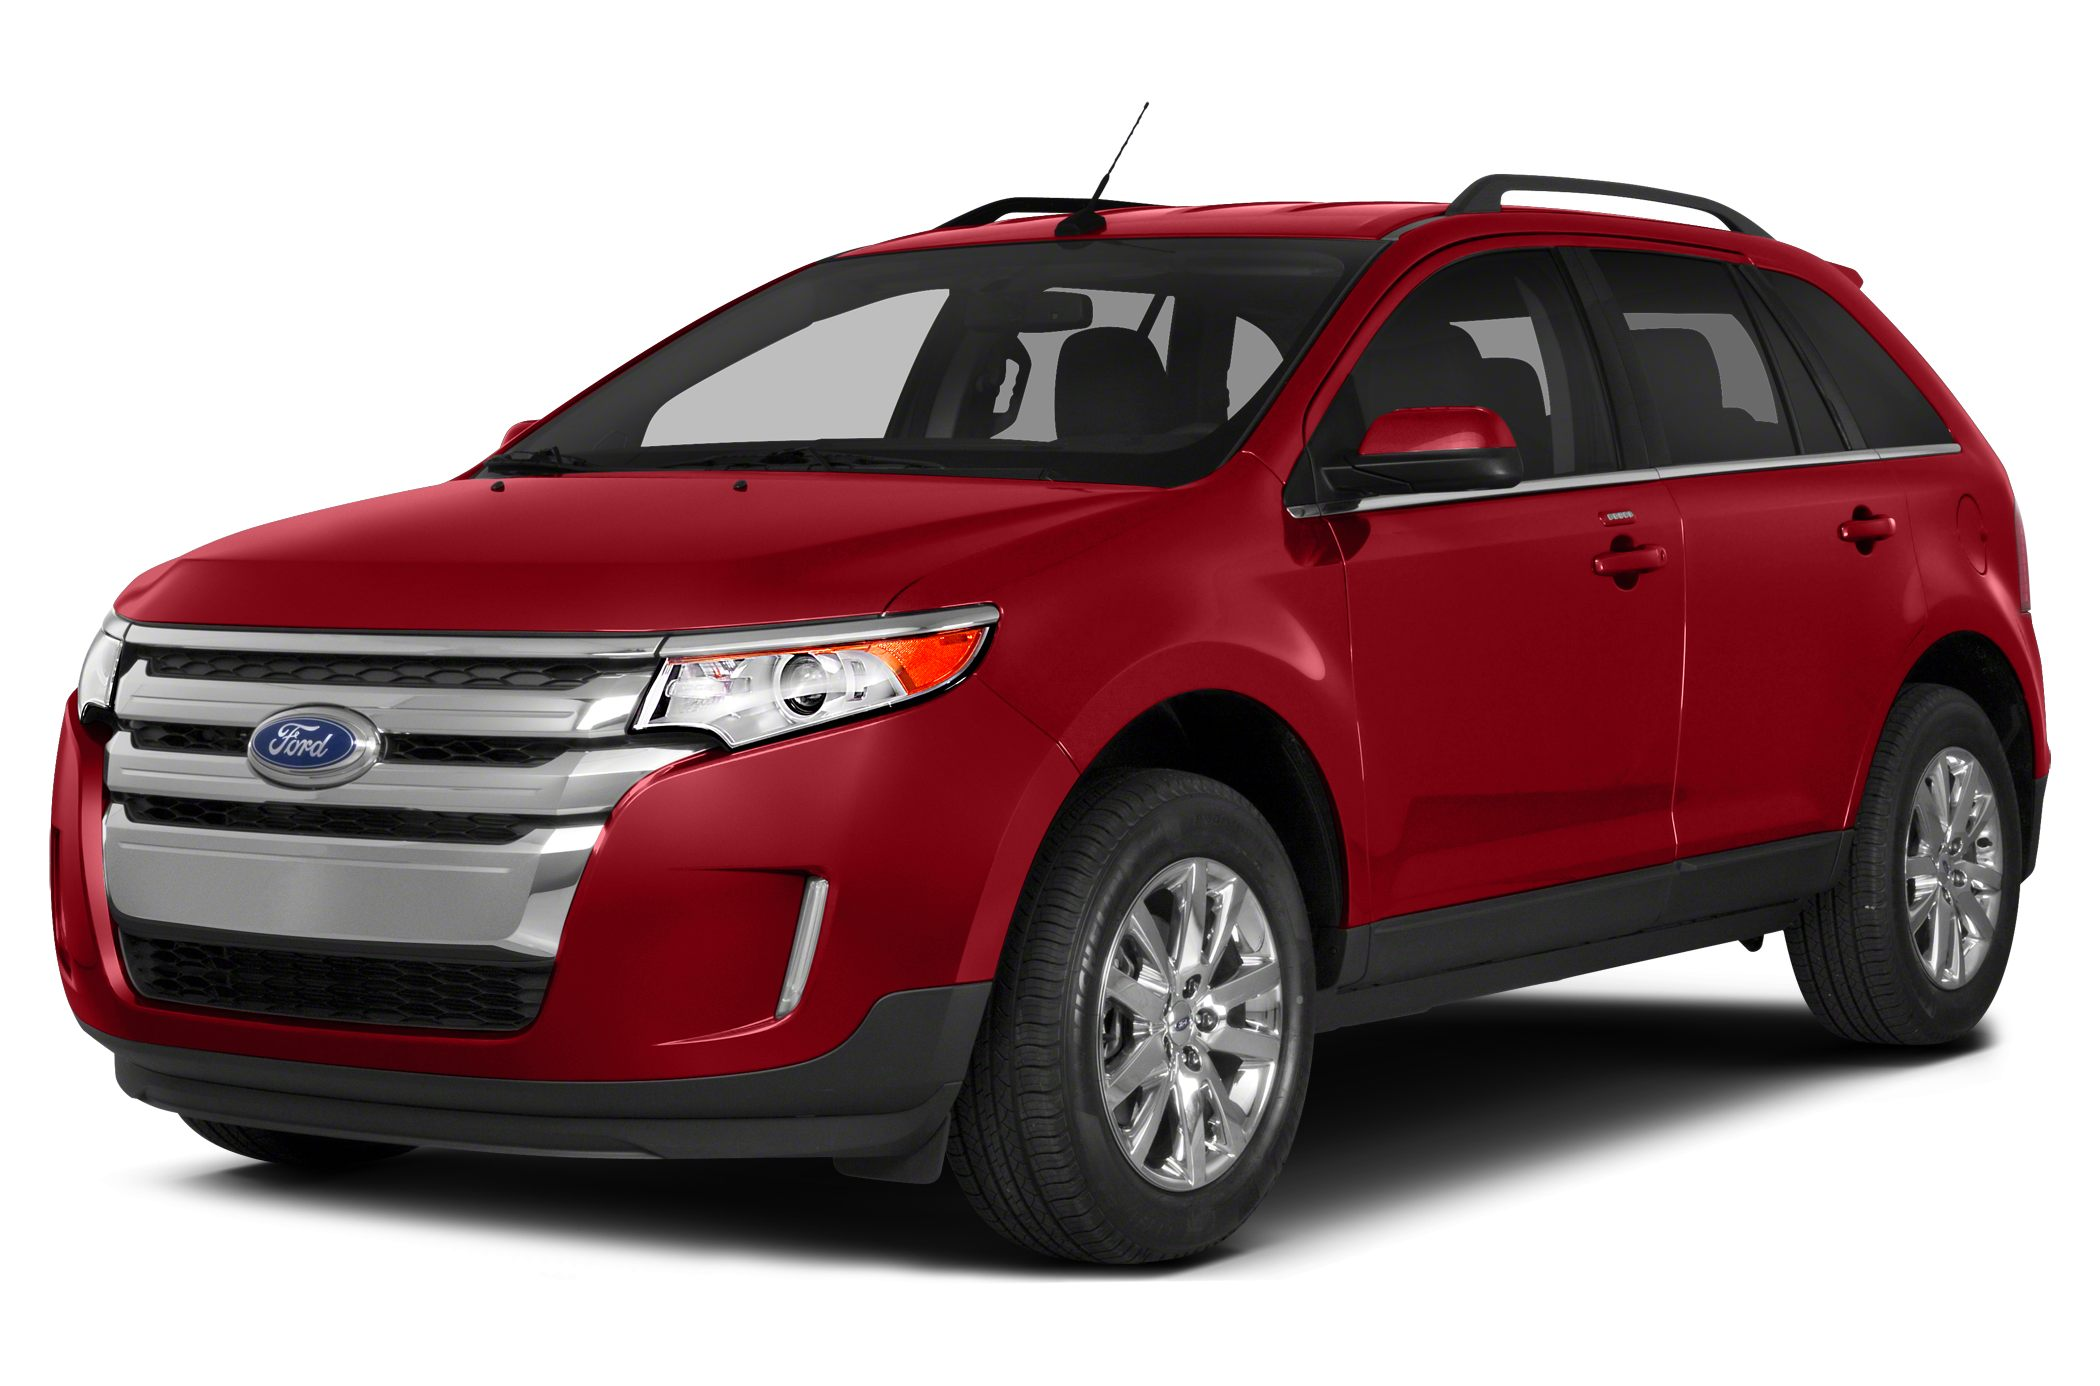 2017 Ford Edge Pricing And Specs